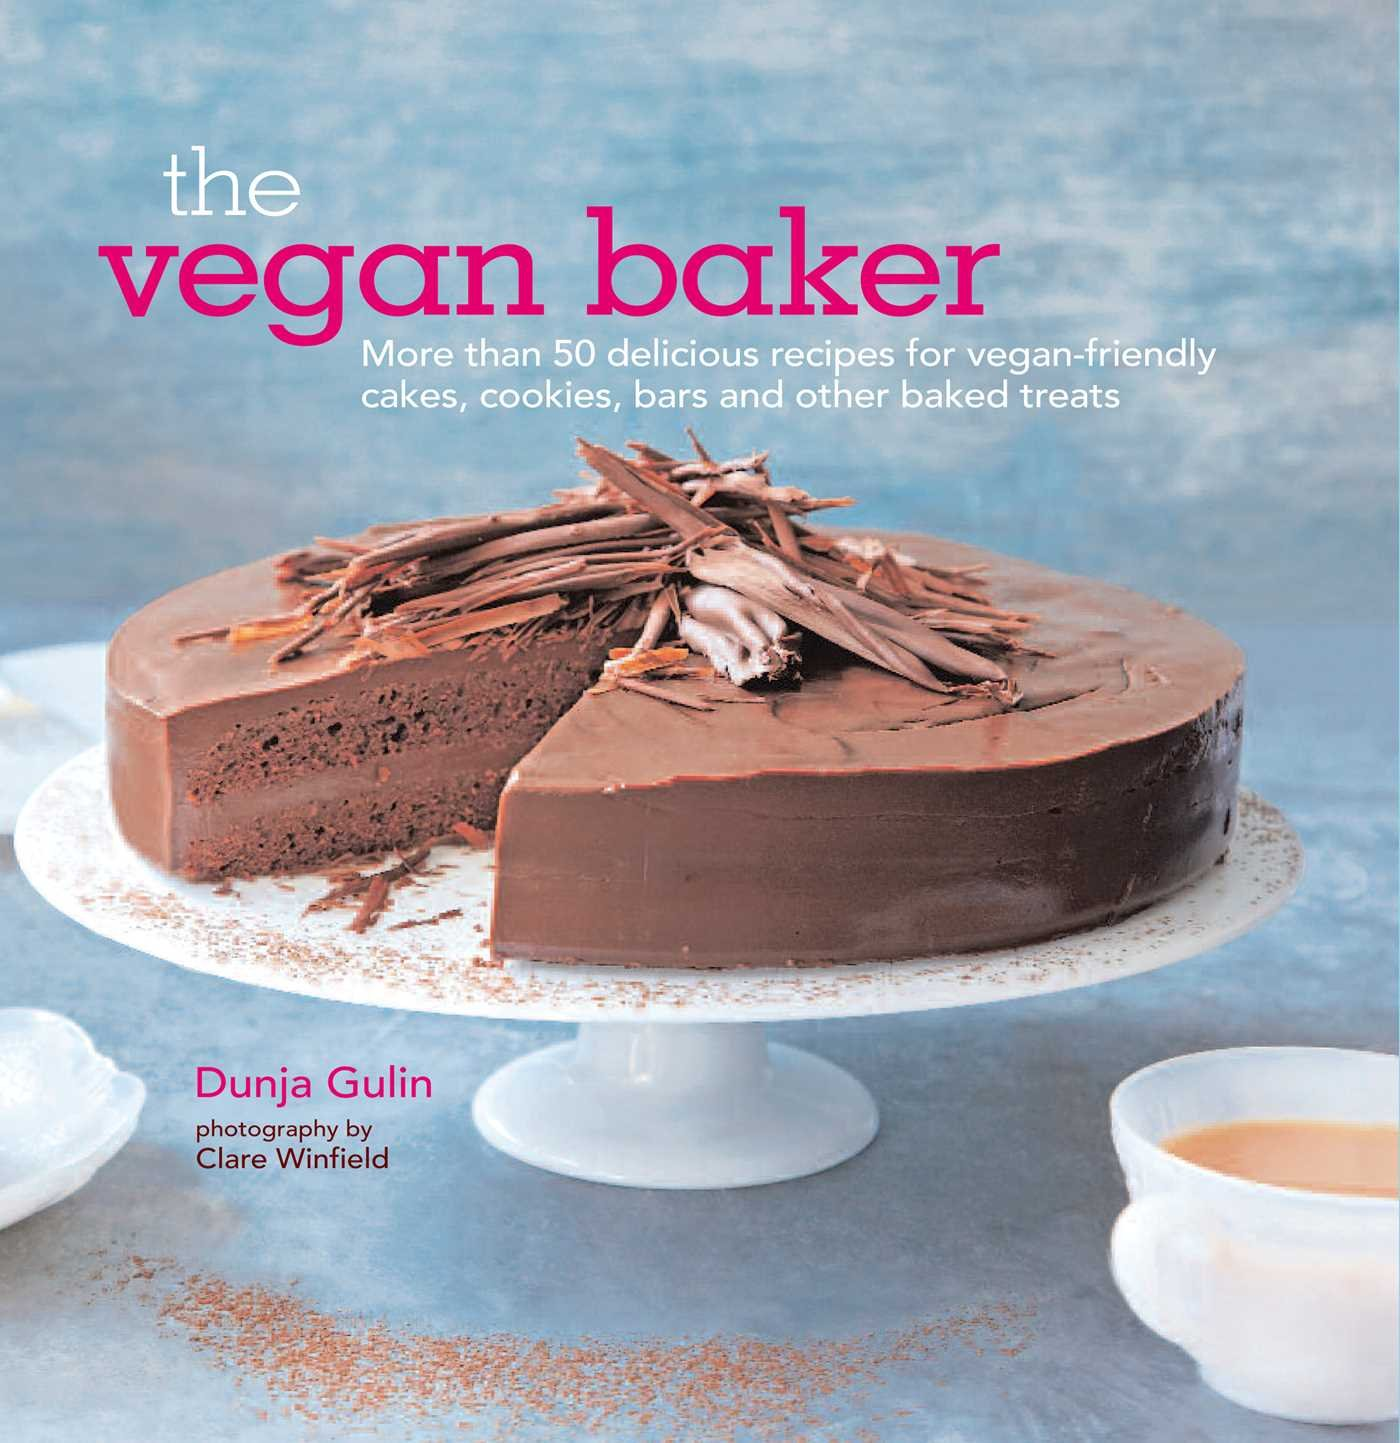 The Vegan Baker: More than 50 delicious recipes for vegan-friendly cakes, cookies, bars and other baked treats ebook